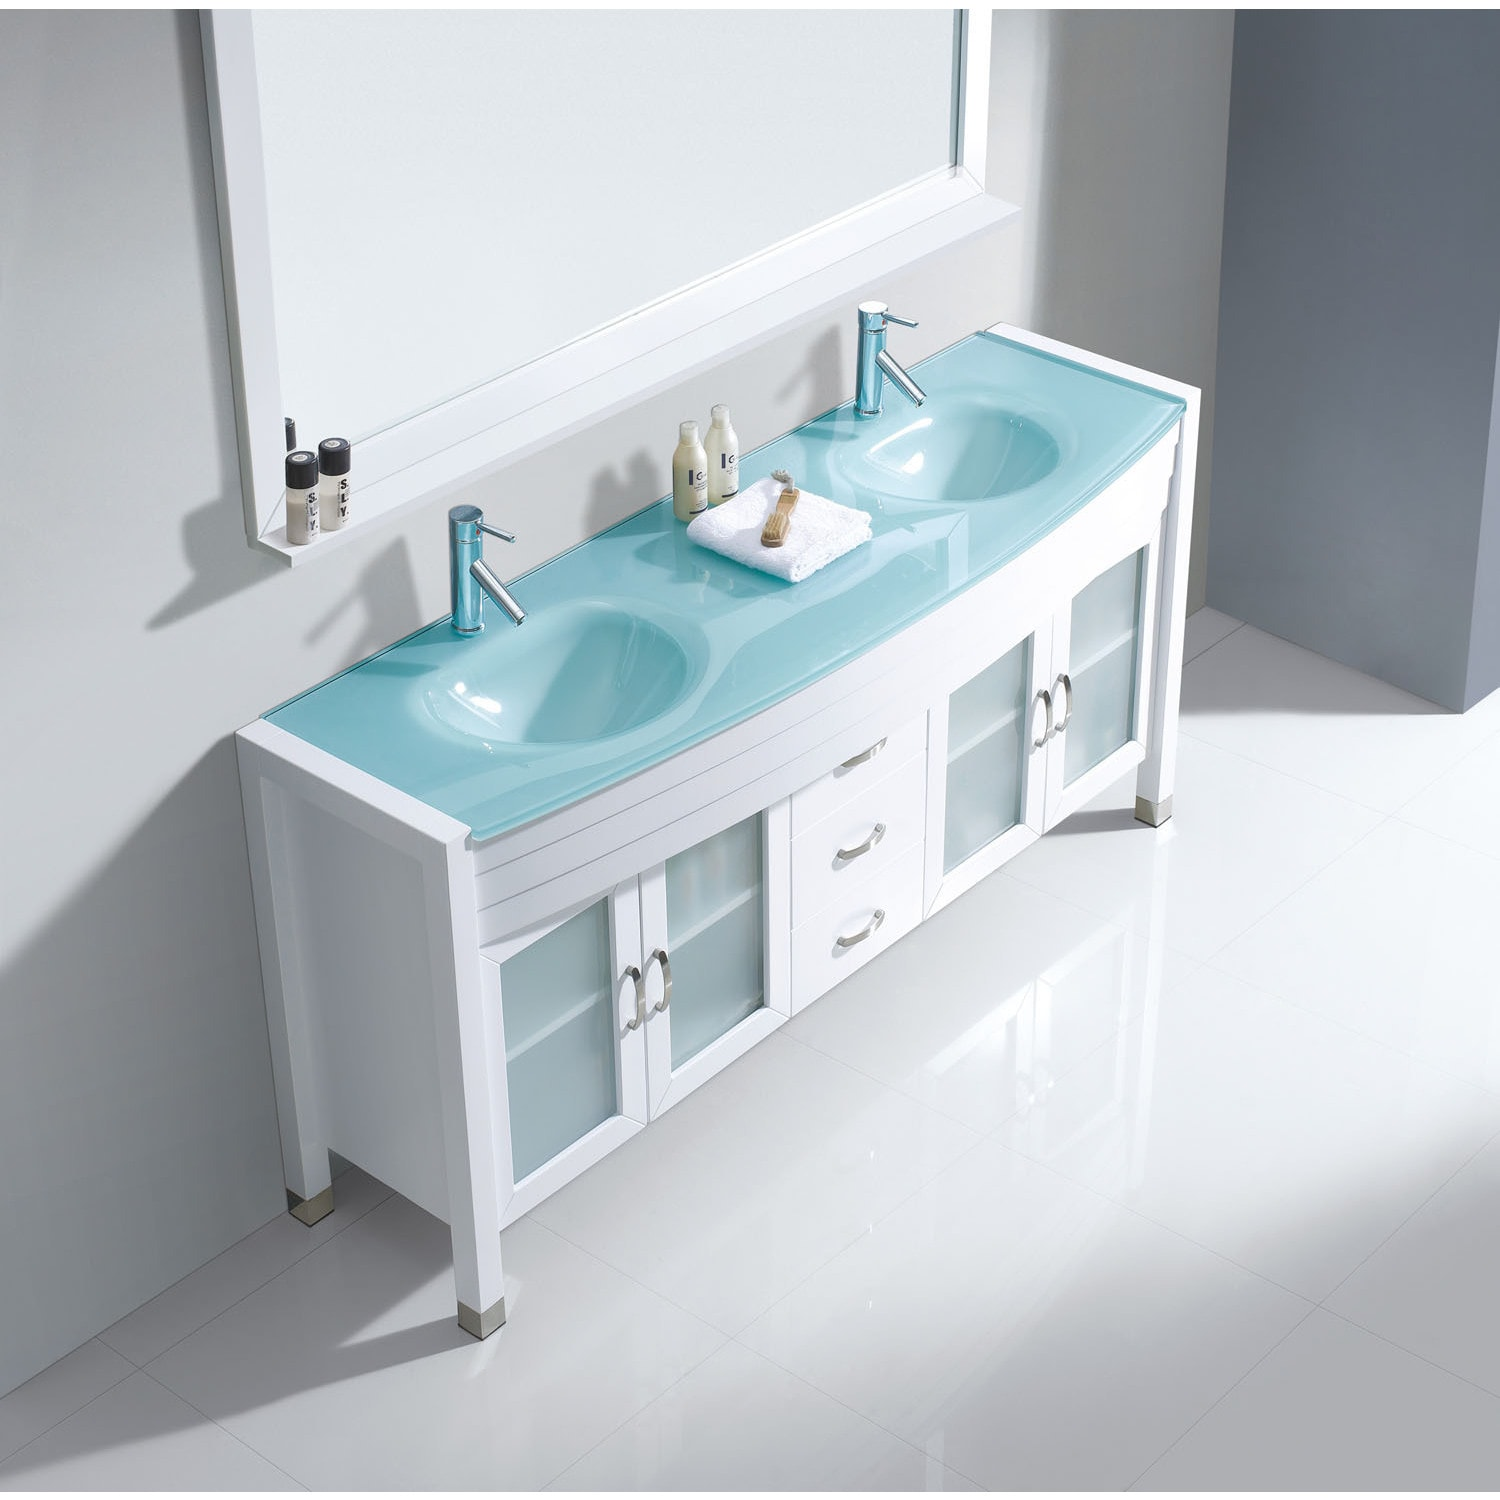 Shop Virtu USA Ava 63-inch Tempered Glass Double Bathroom Vanity Set ...